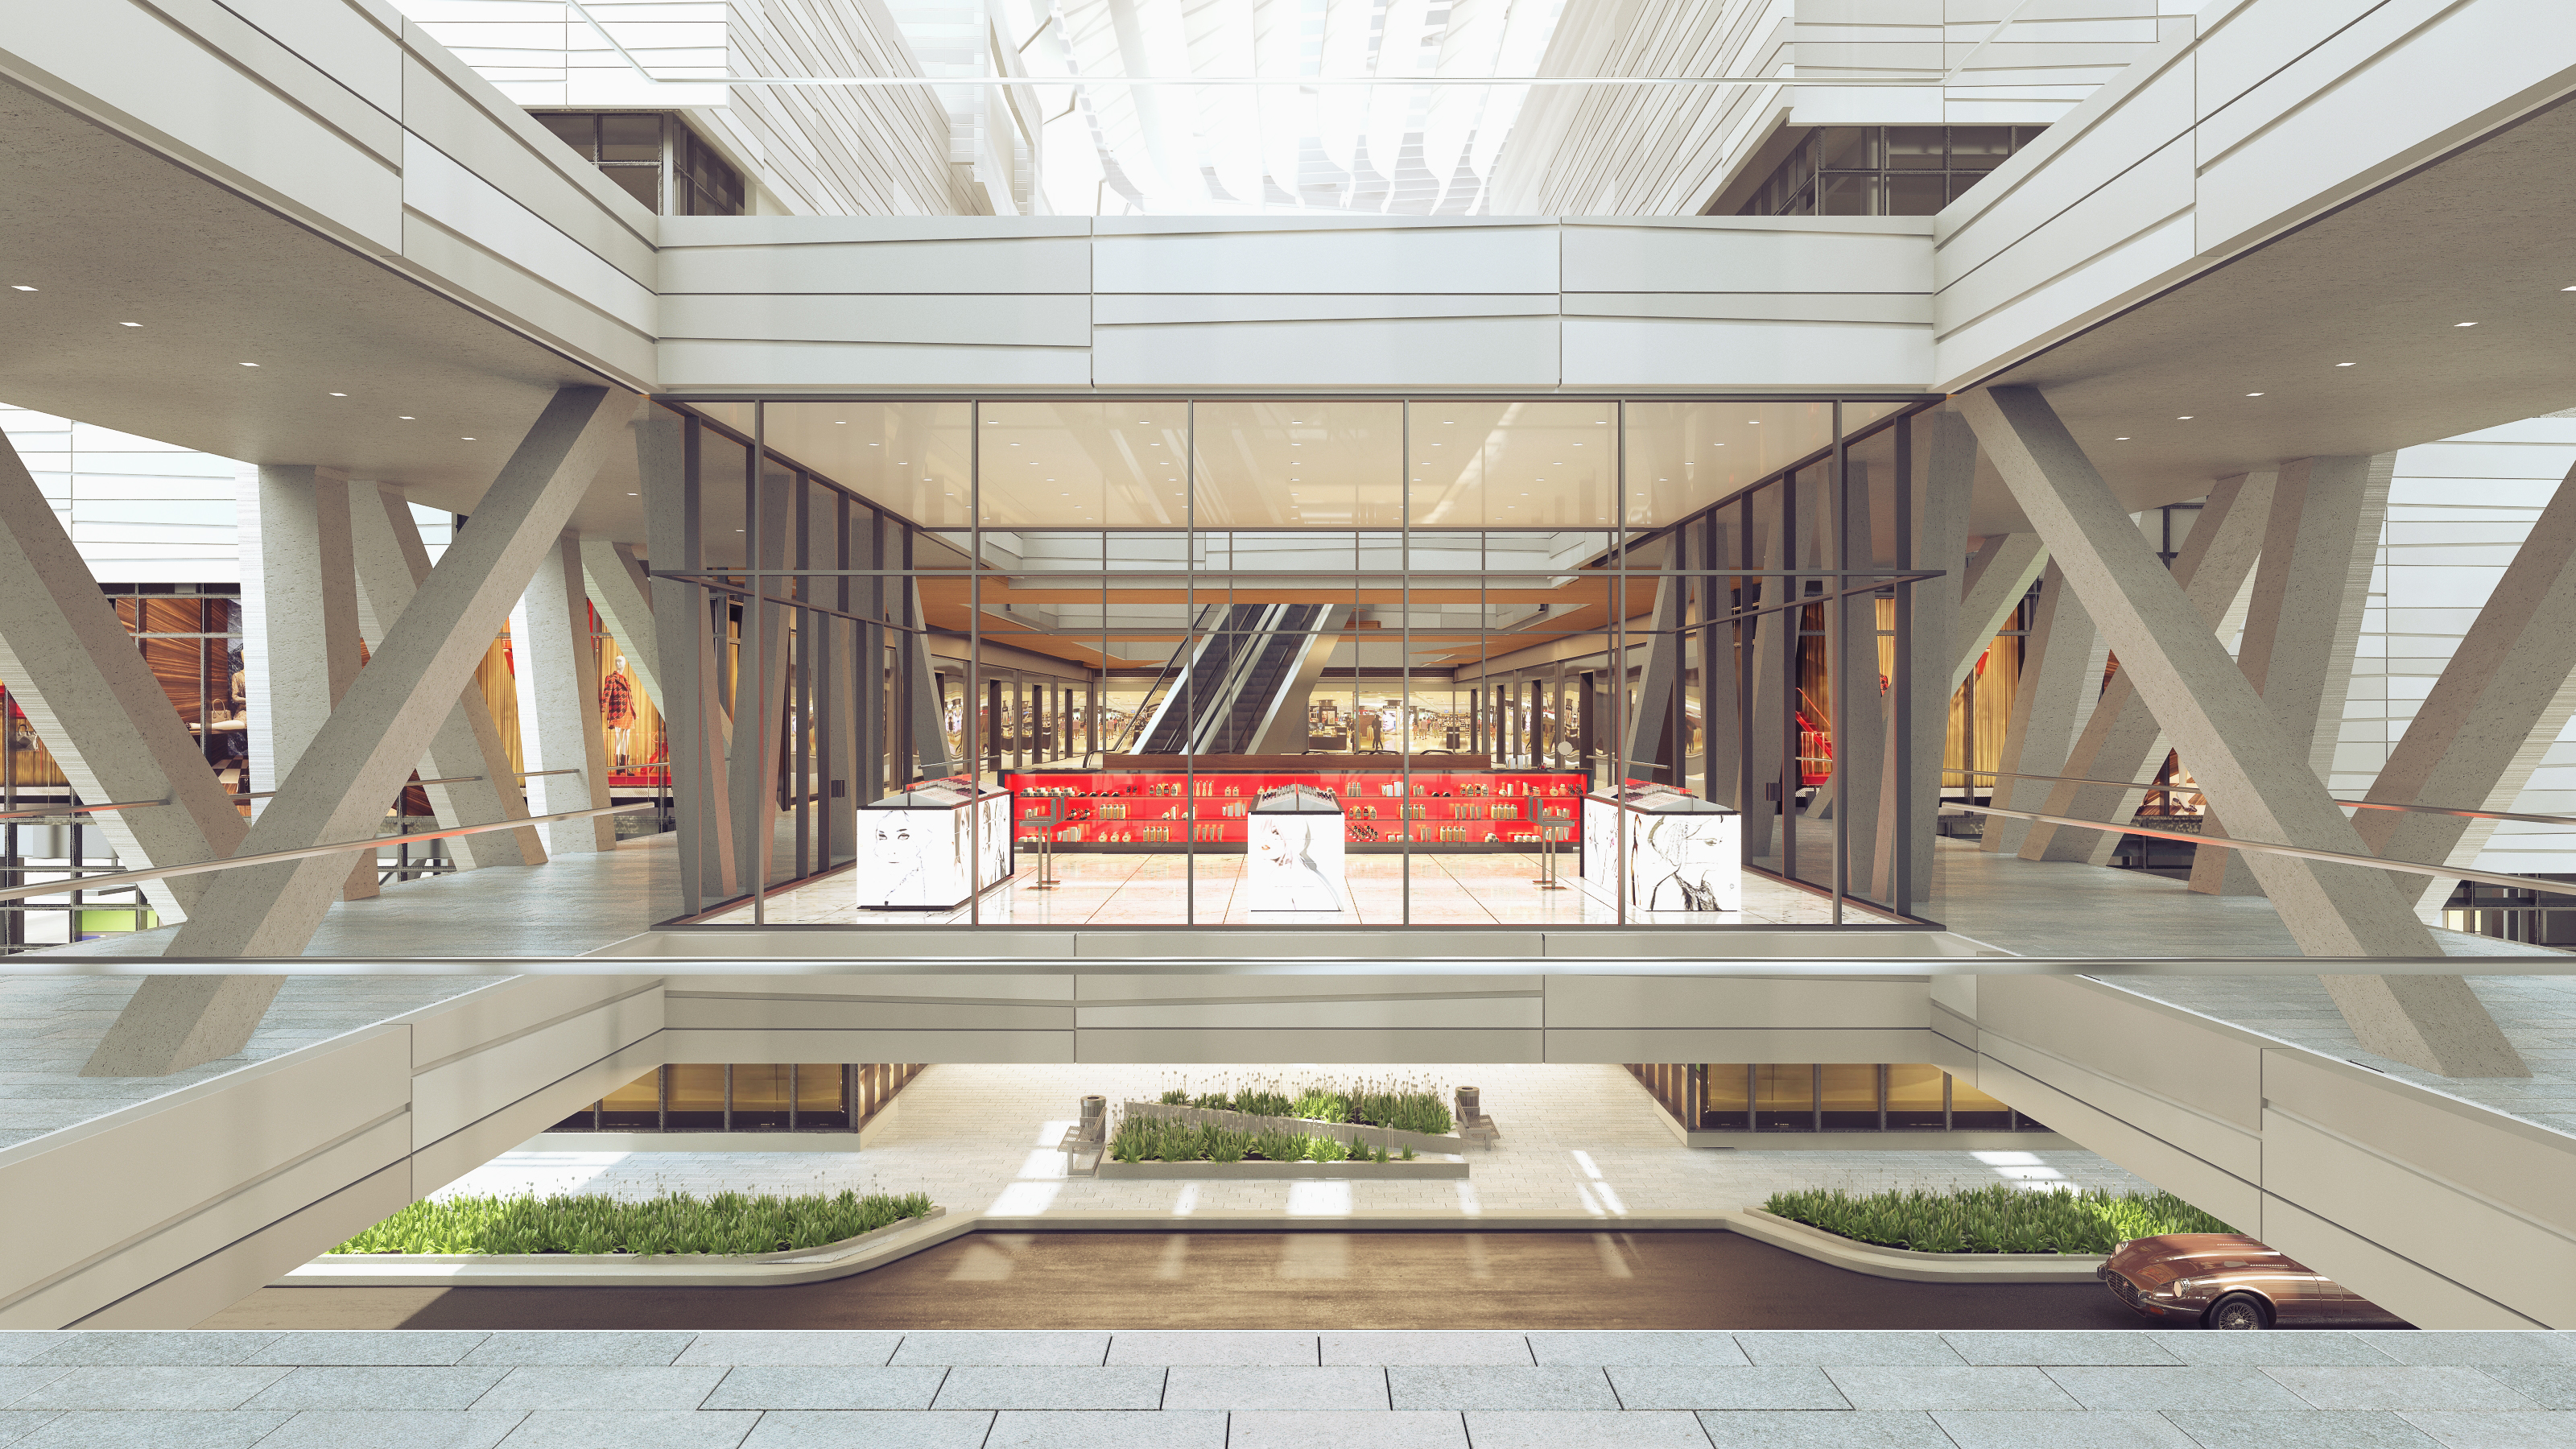 A rendering of MAC's glass store set to open at Brickell City Centre.